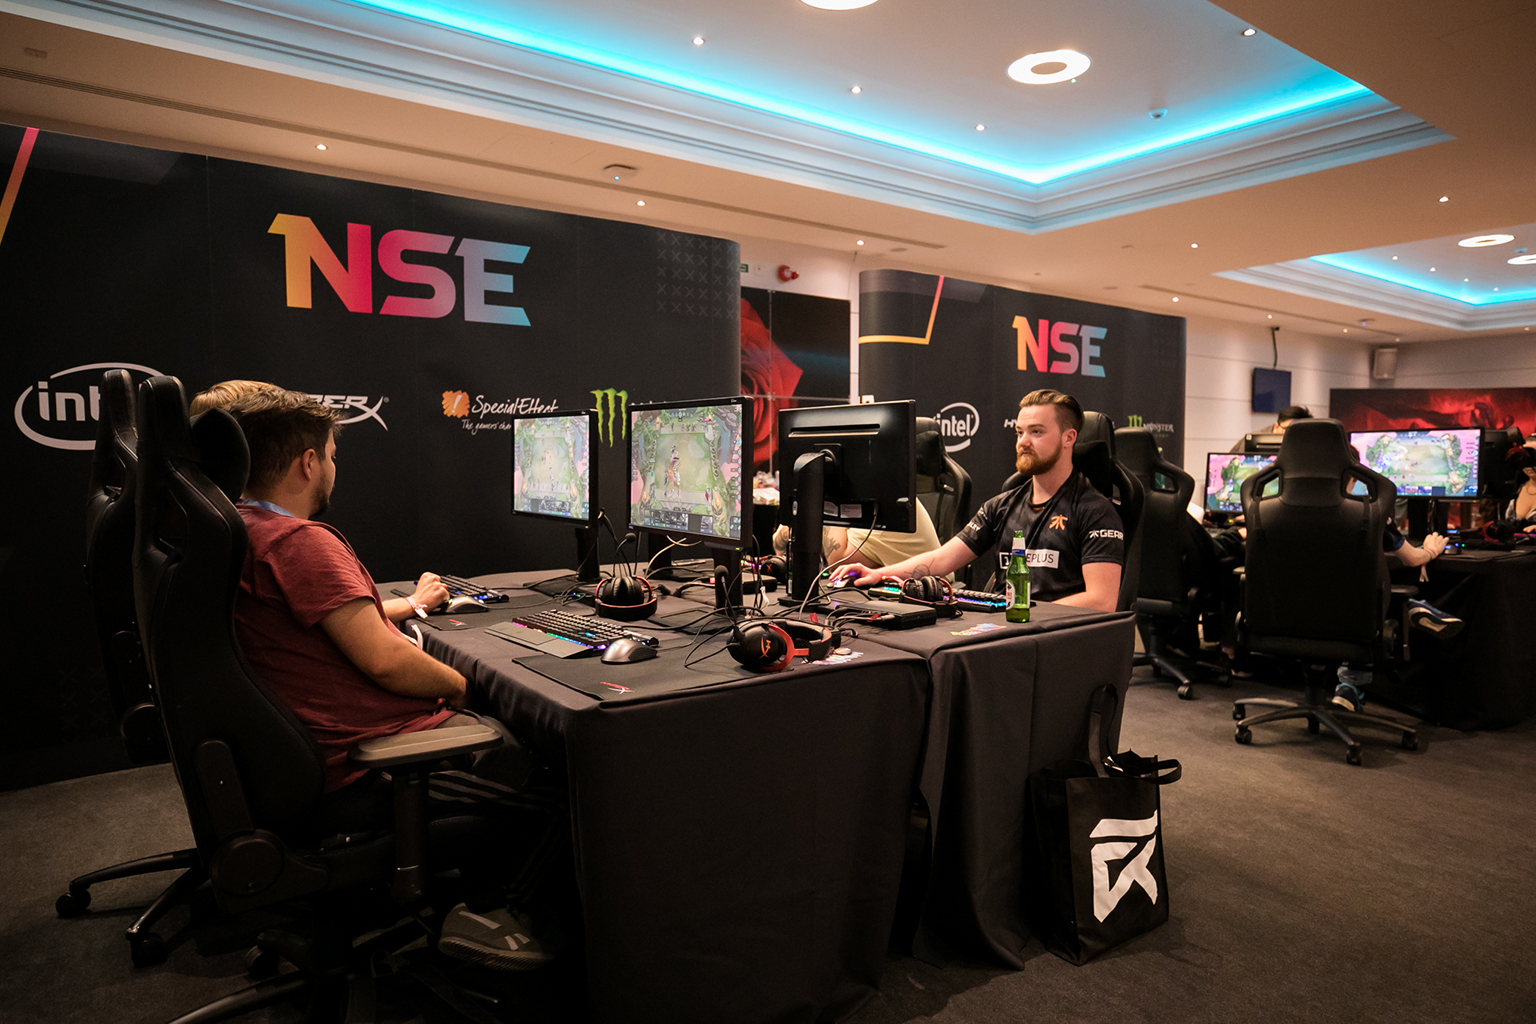 NSE launched an activation at last year's UKLC Summer Finals. Photo credit: Joe Brady/LVP